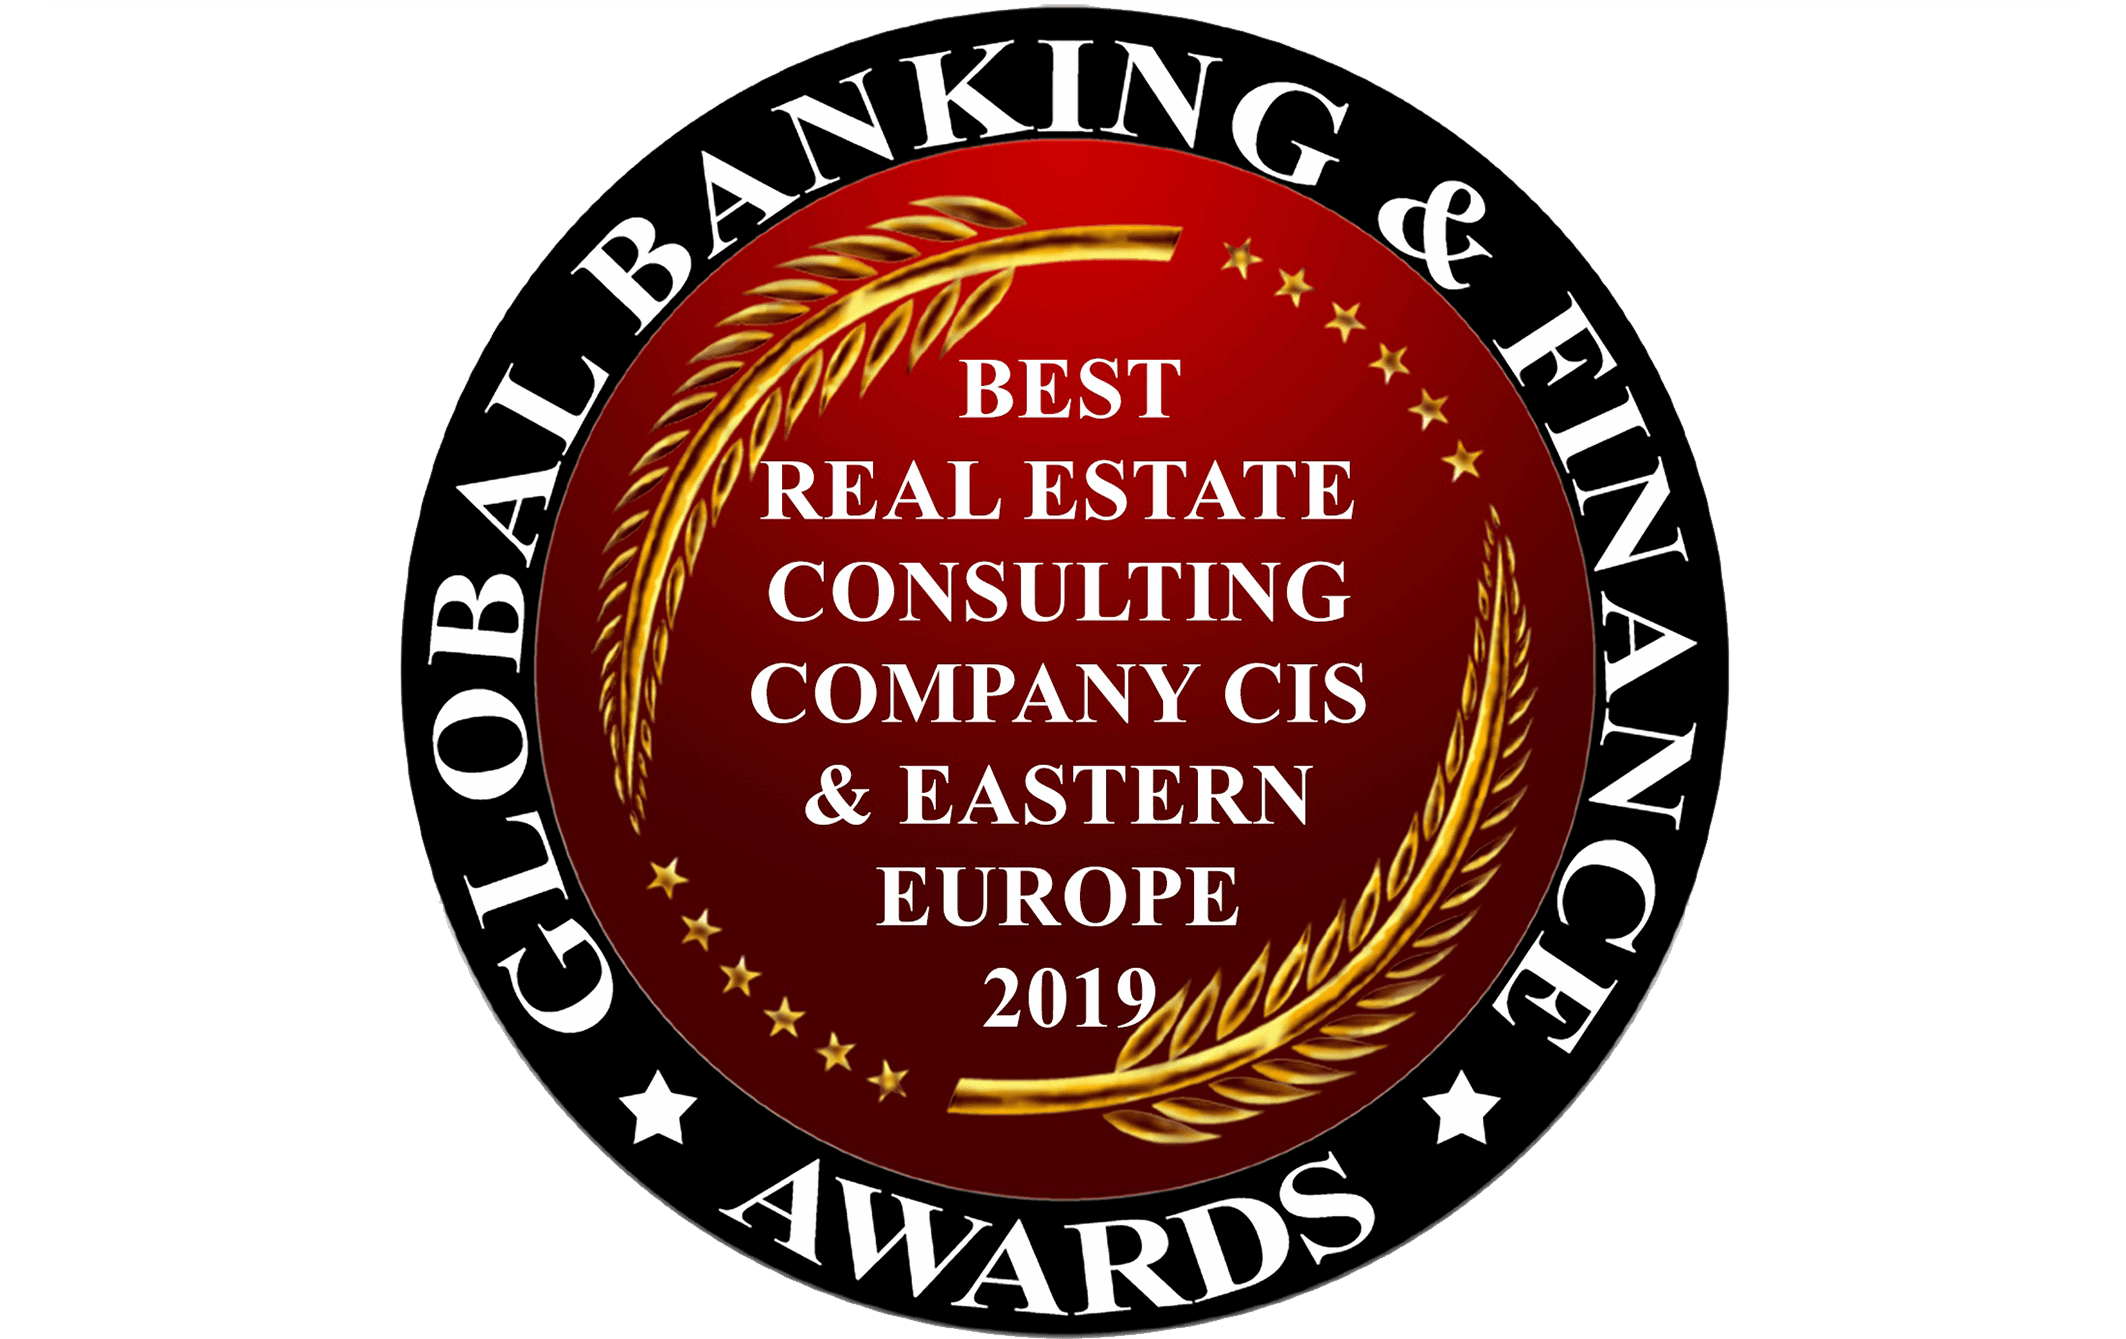 Global Banking & Finance Awards 2019